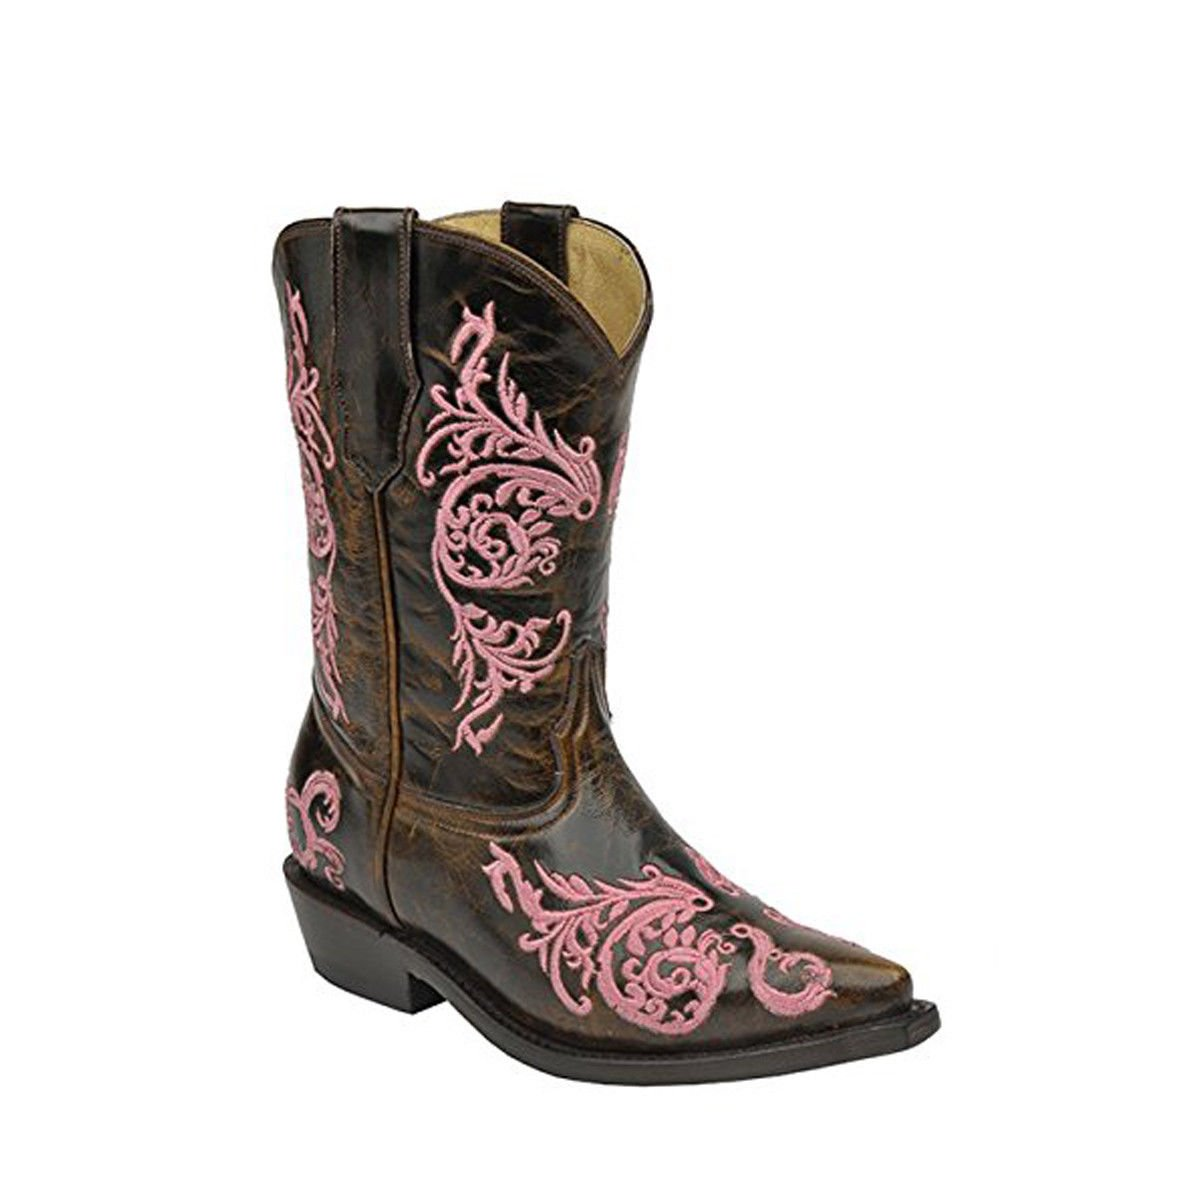 CORRAL Youth Taupe Embroidered Pink Dahlia Snip Toe Cowboy Boots A2962